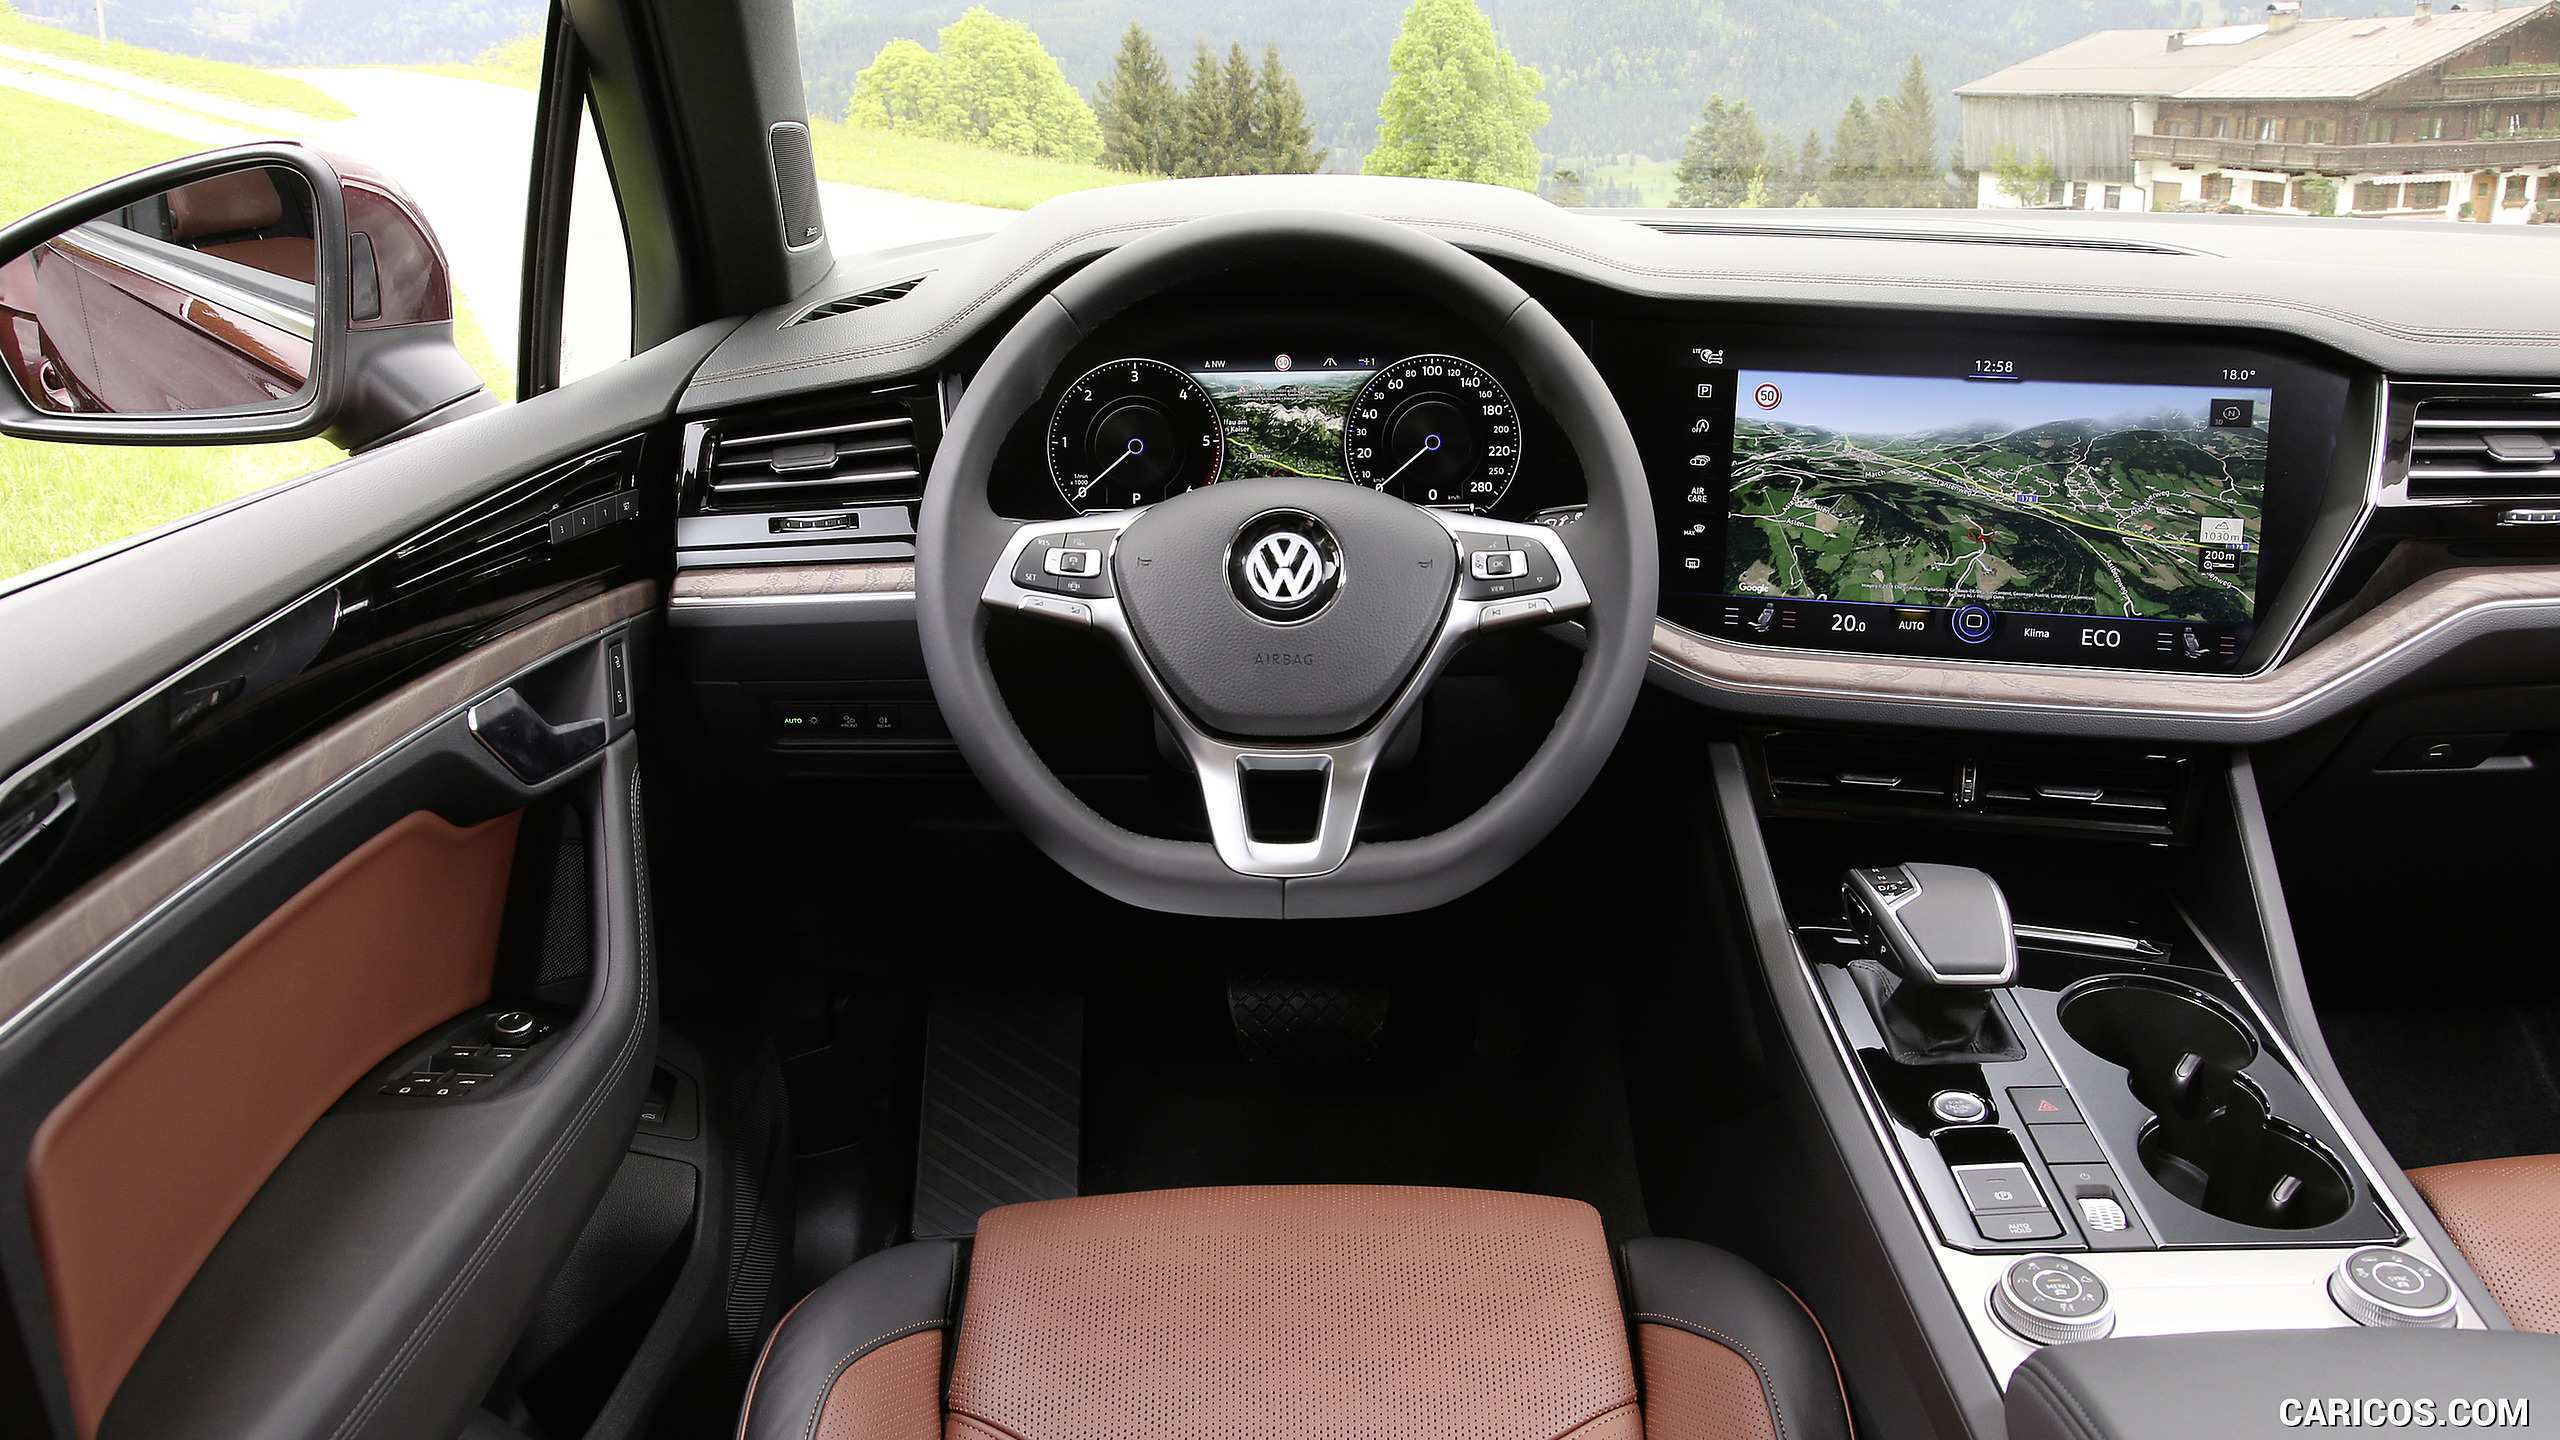 79 Great 2019 Volkswagen Touareg First Drive with 2019 Volkswagen Touareg